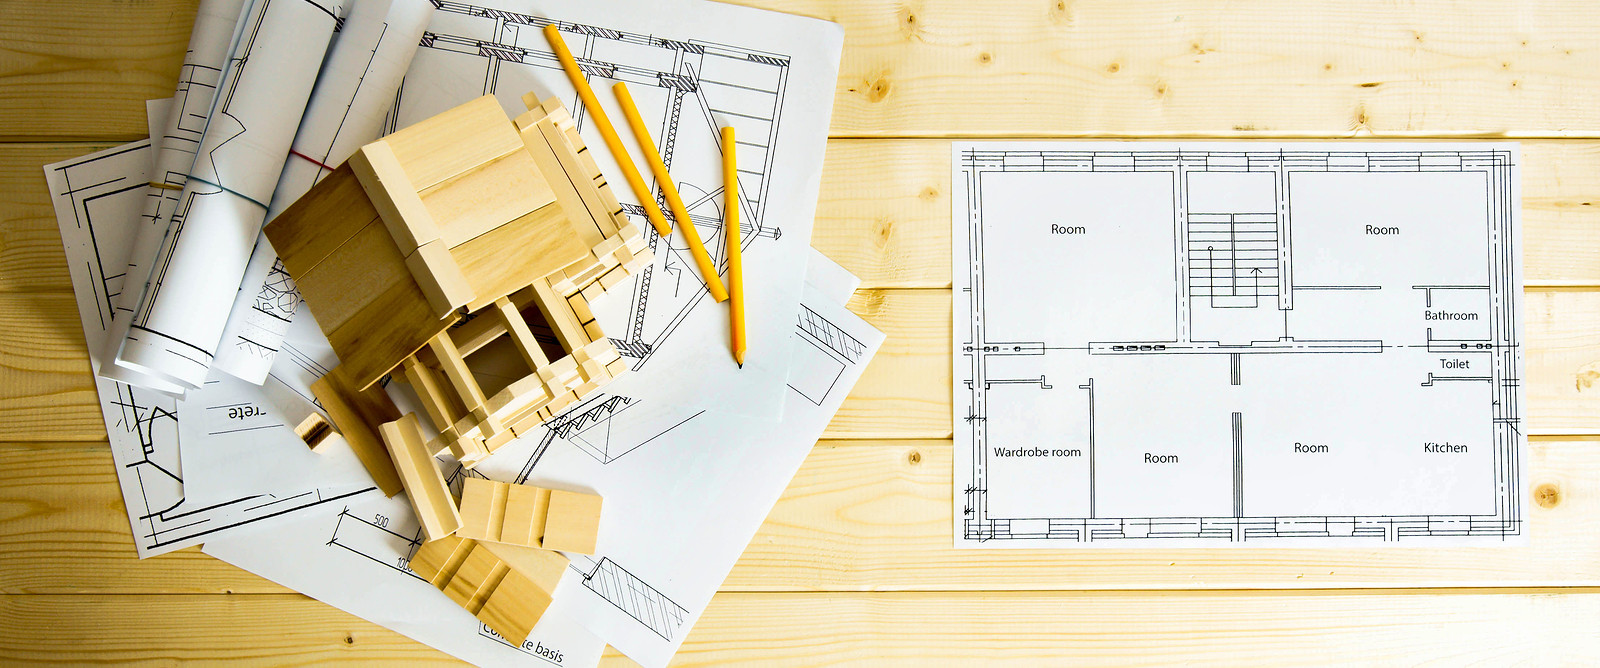 Planning your house or renovation design starts here